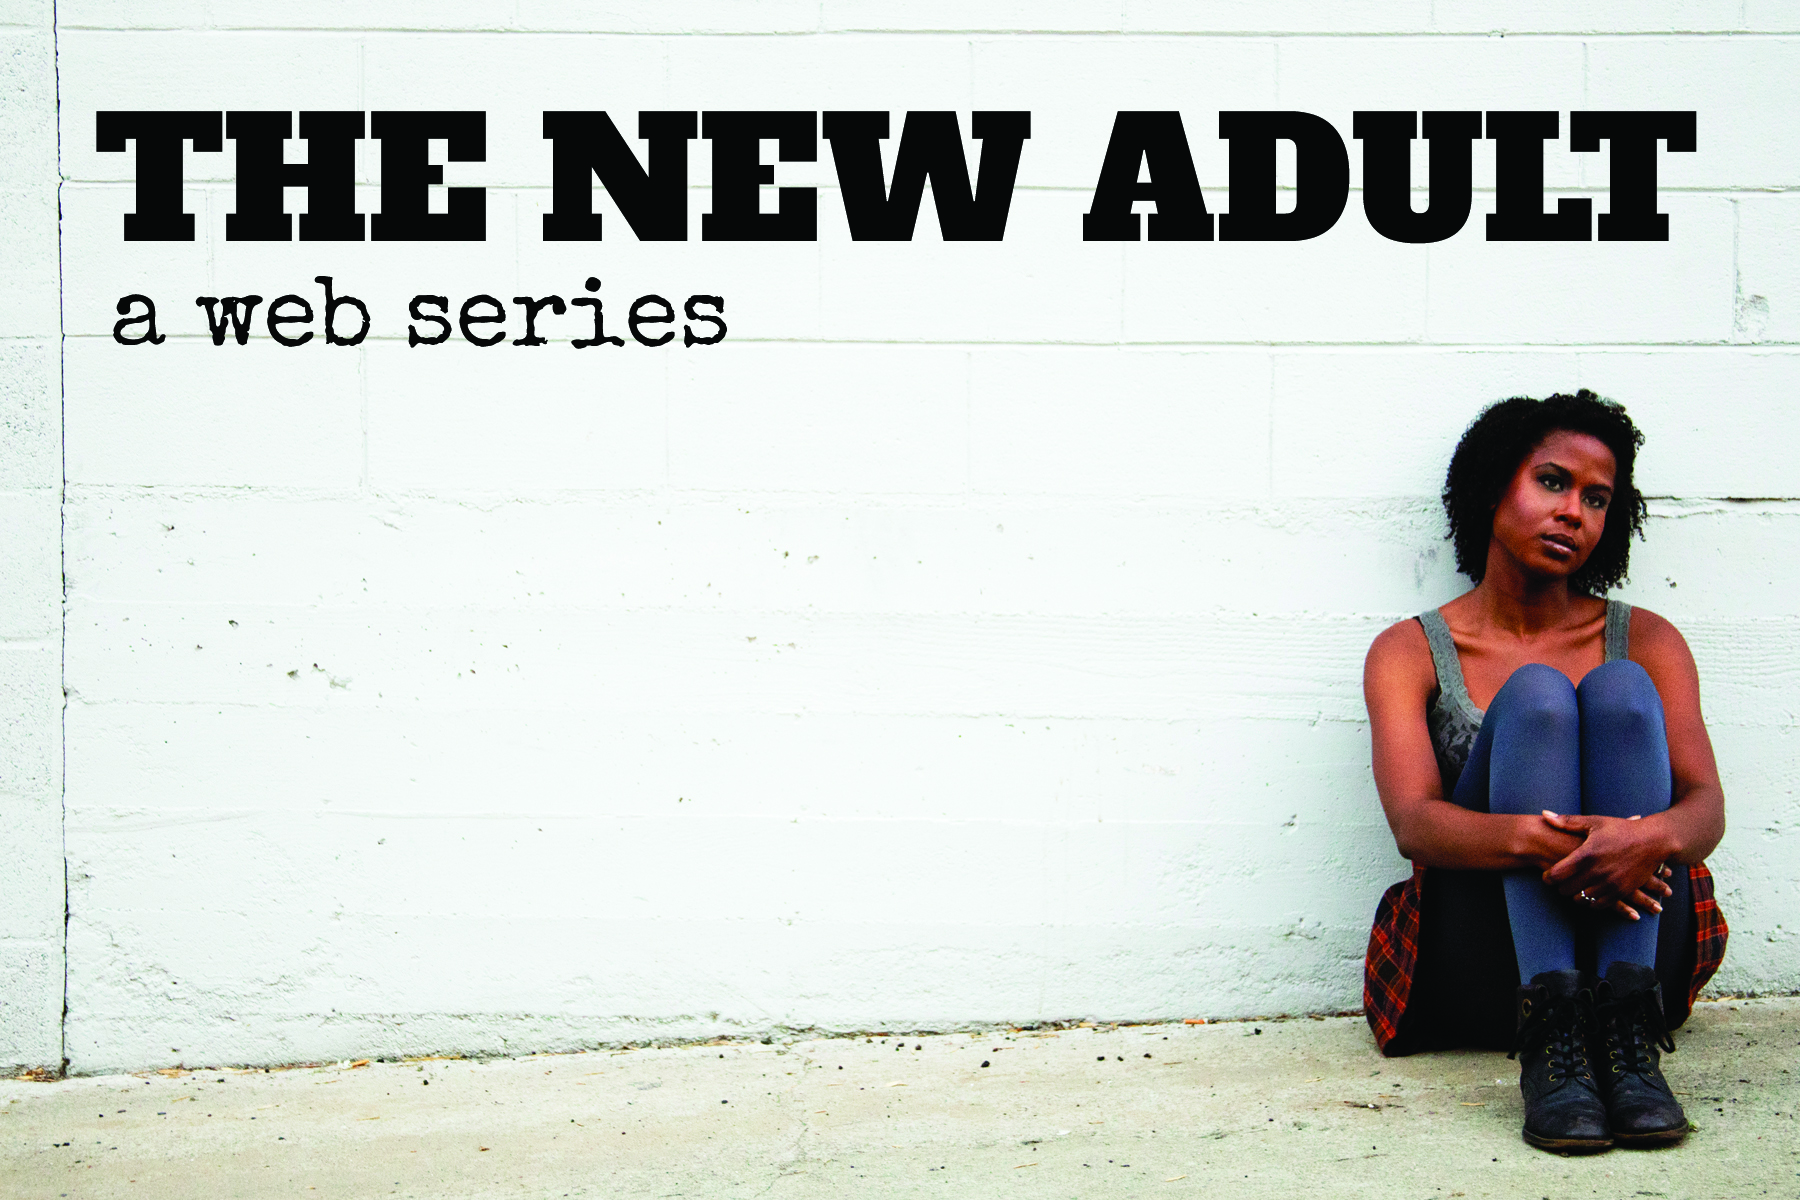 LOOK WHO'S NEXT: The New Adult